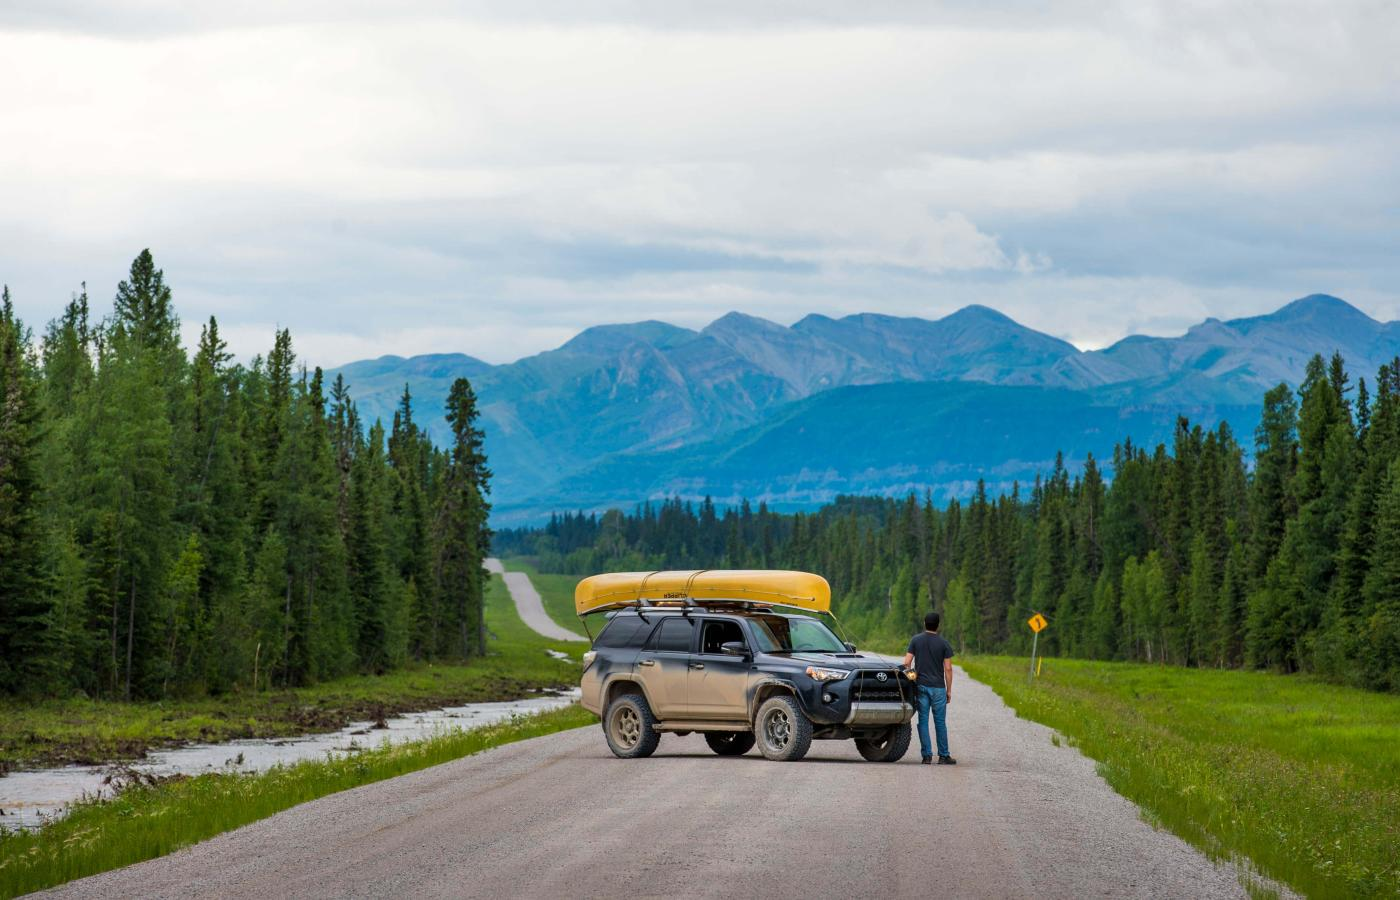 Roadtrip with canoe on Liard highway in the Dehcho